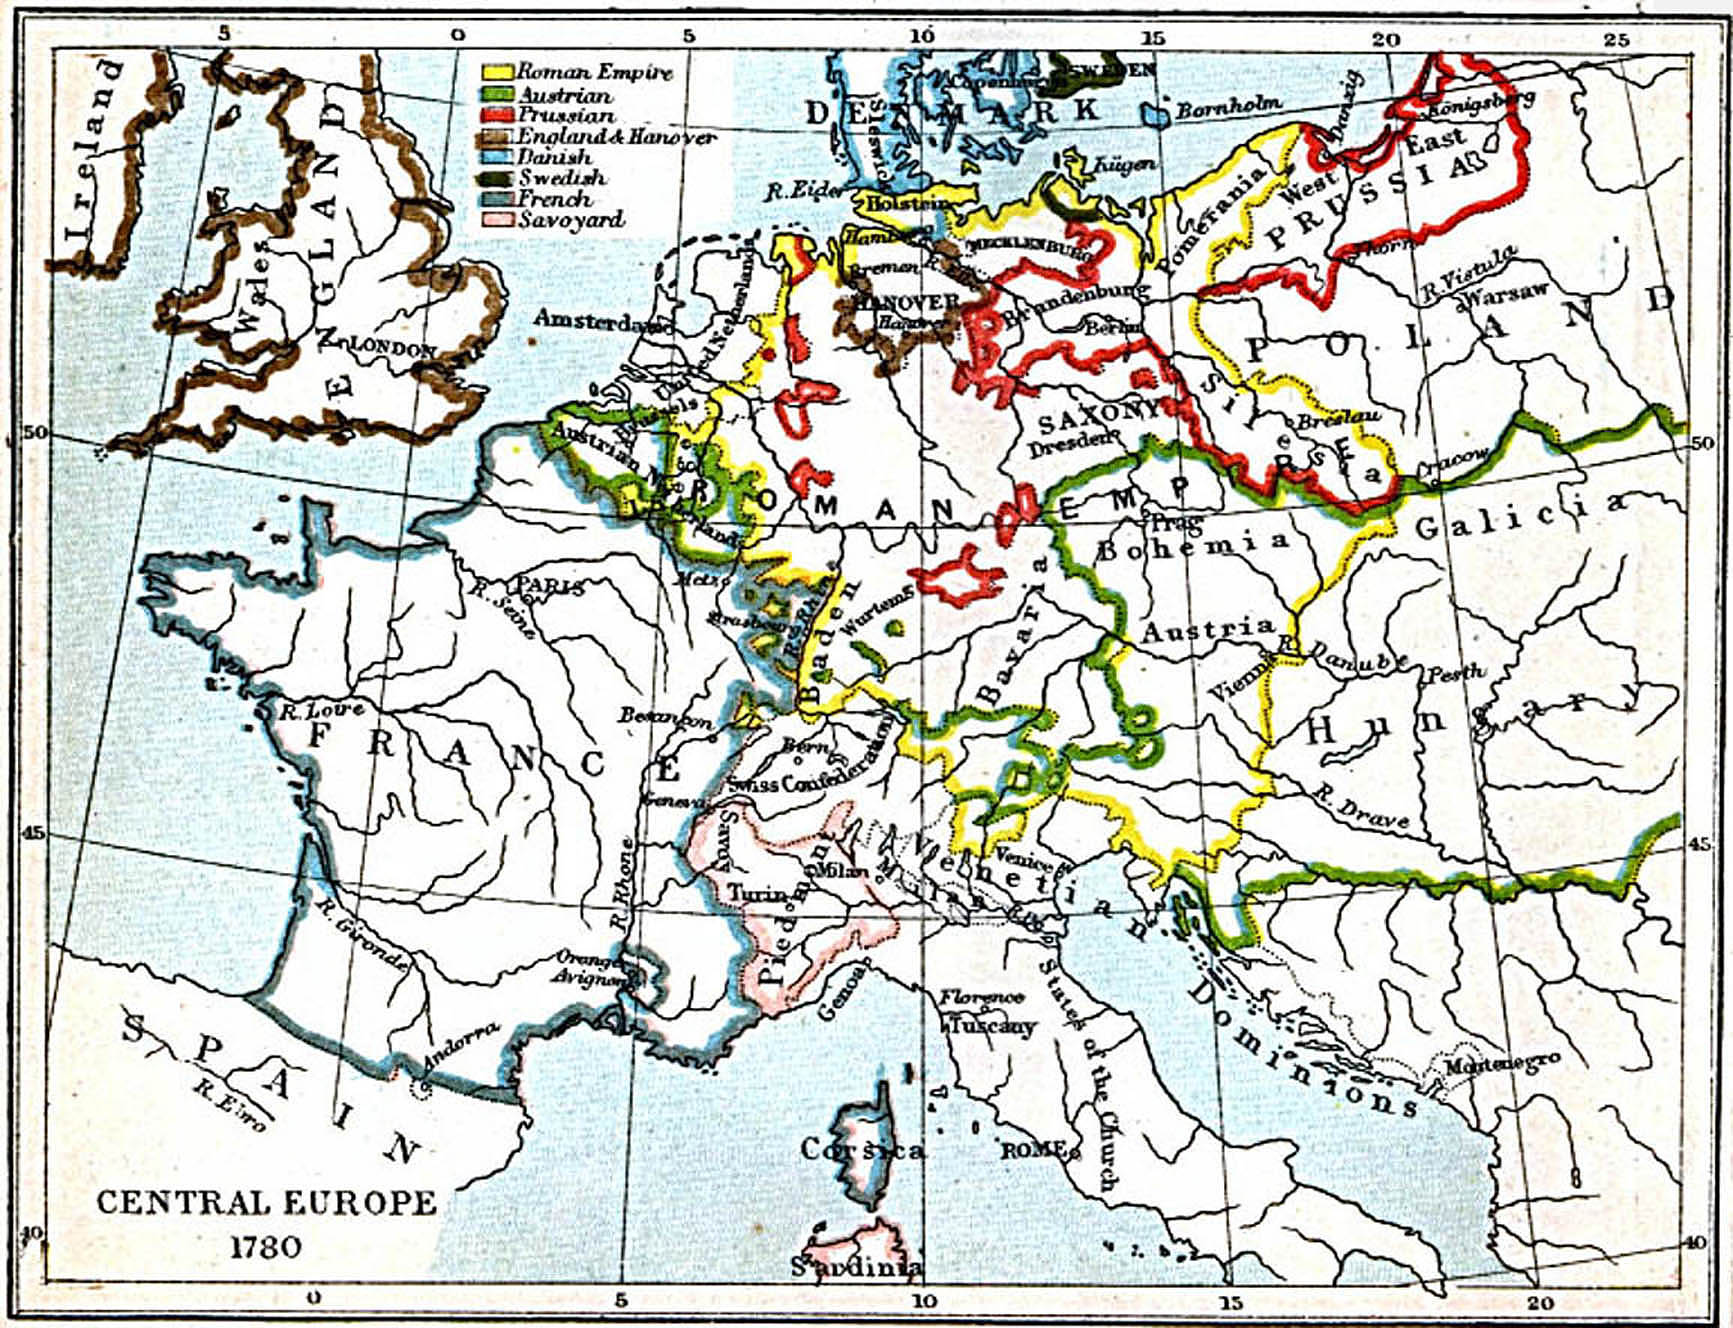 Maps of Central Europe 980 A.D. - 1871 A.D. - Perry-Castañeda Map ...